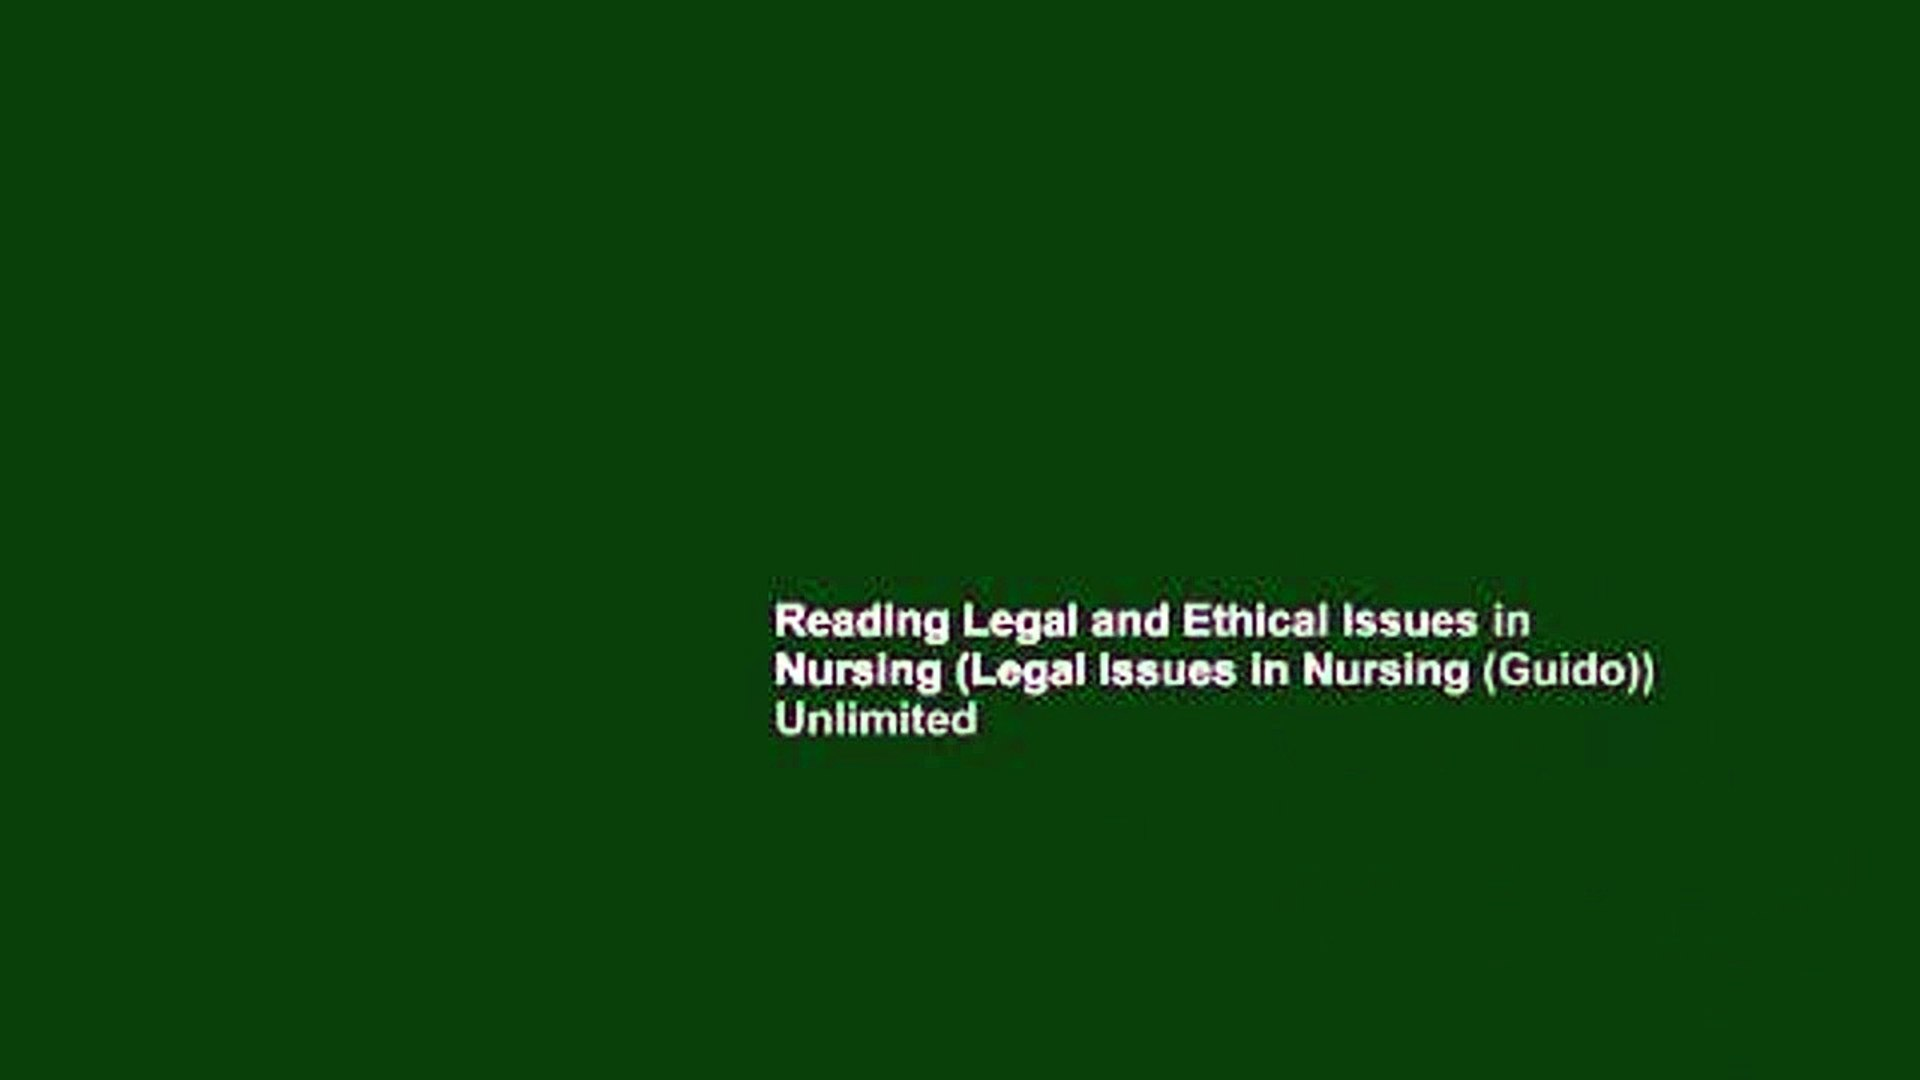 Reading Legal and Ethical Issues in Nursing (Legal Issues in Nursing (Guido)) Unlimited